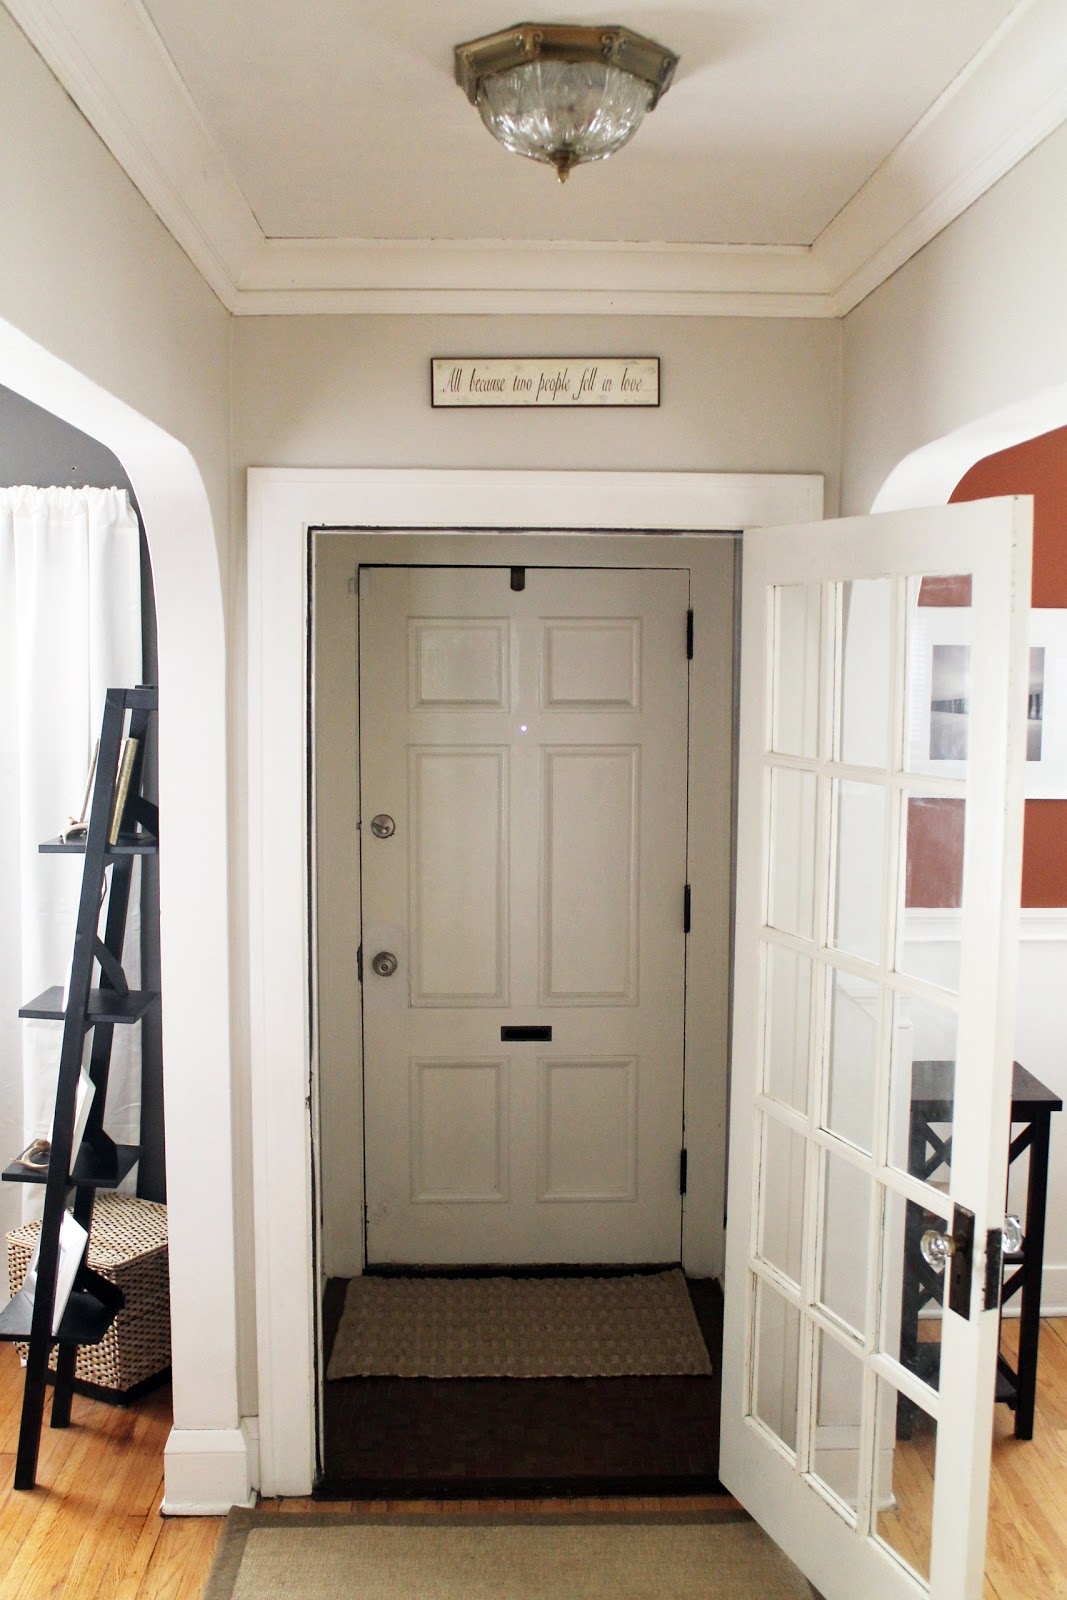 house front porch design houzz html with Vestibule Huh on I Need Help Again Choosing Light For Front additionally Timber Frame Front Porch together with 327ae2bffebfe678 further Vestibule Huh further Victorian Railing Designs.